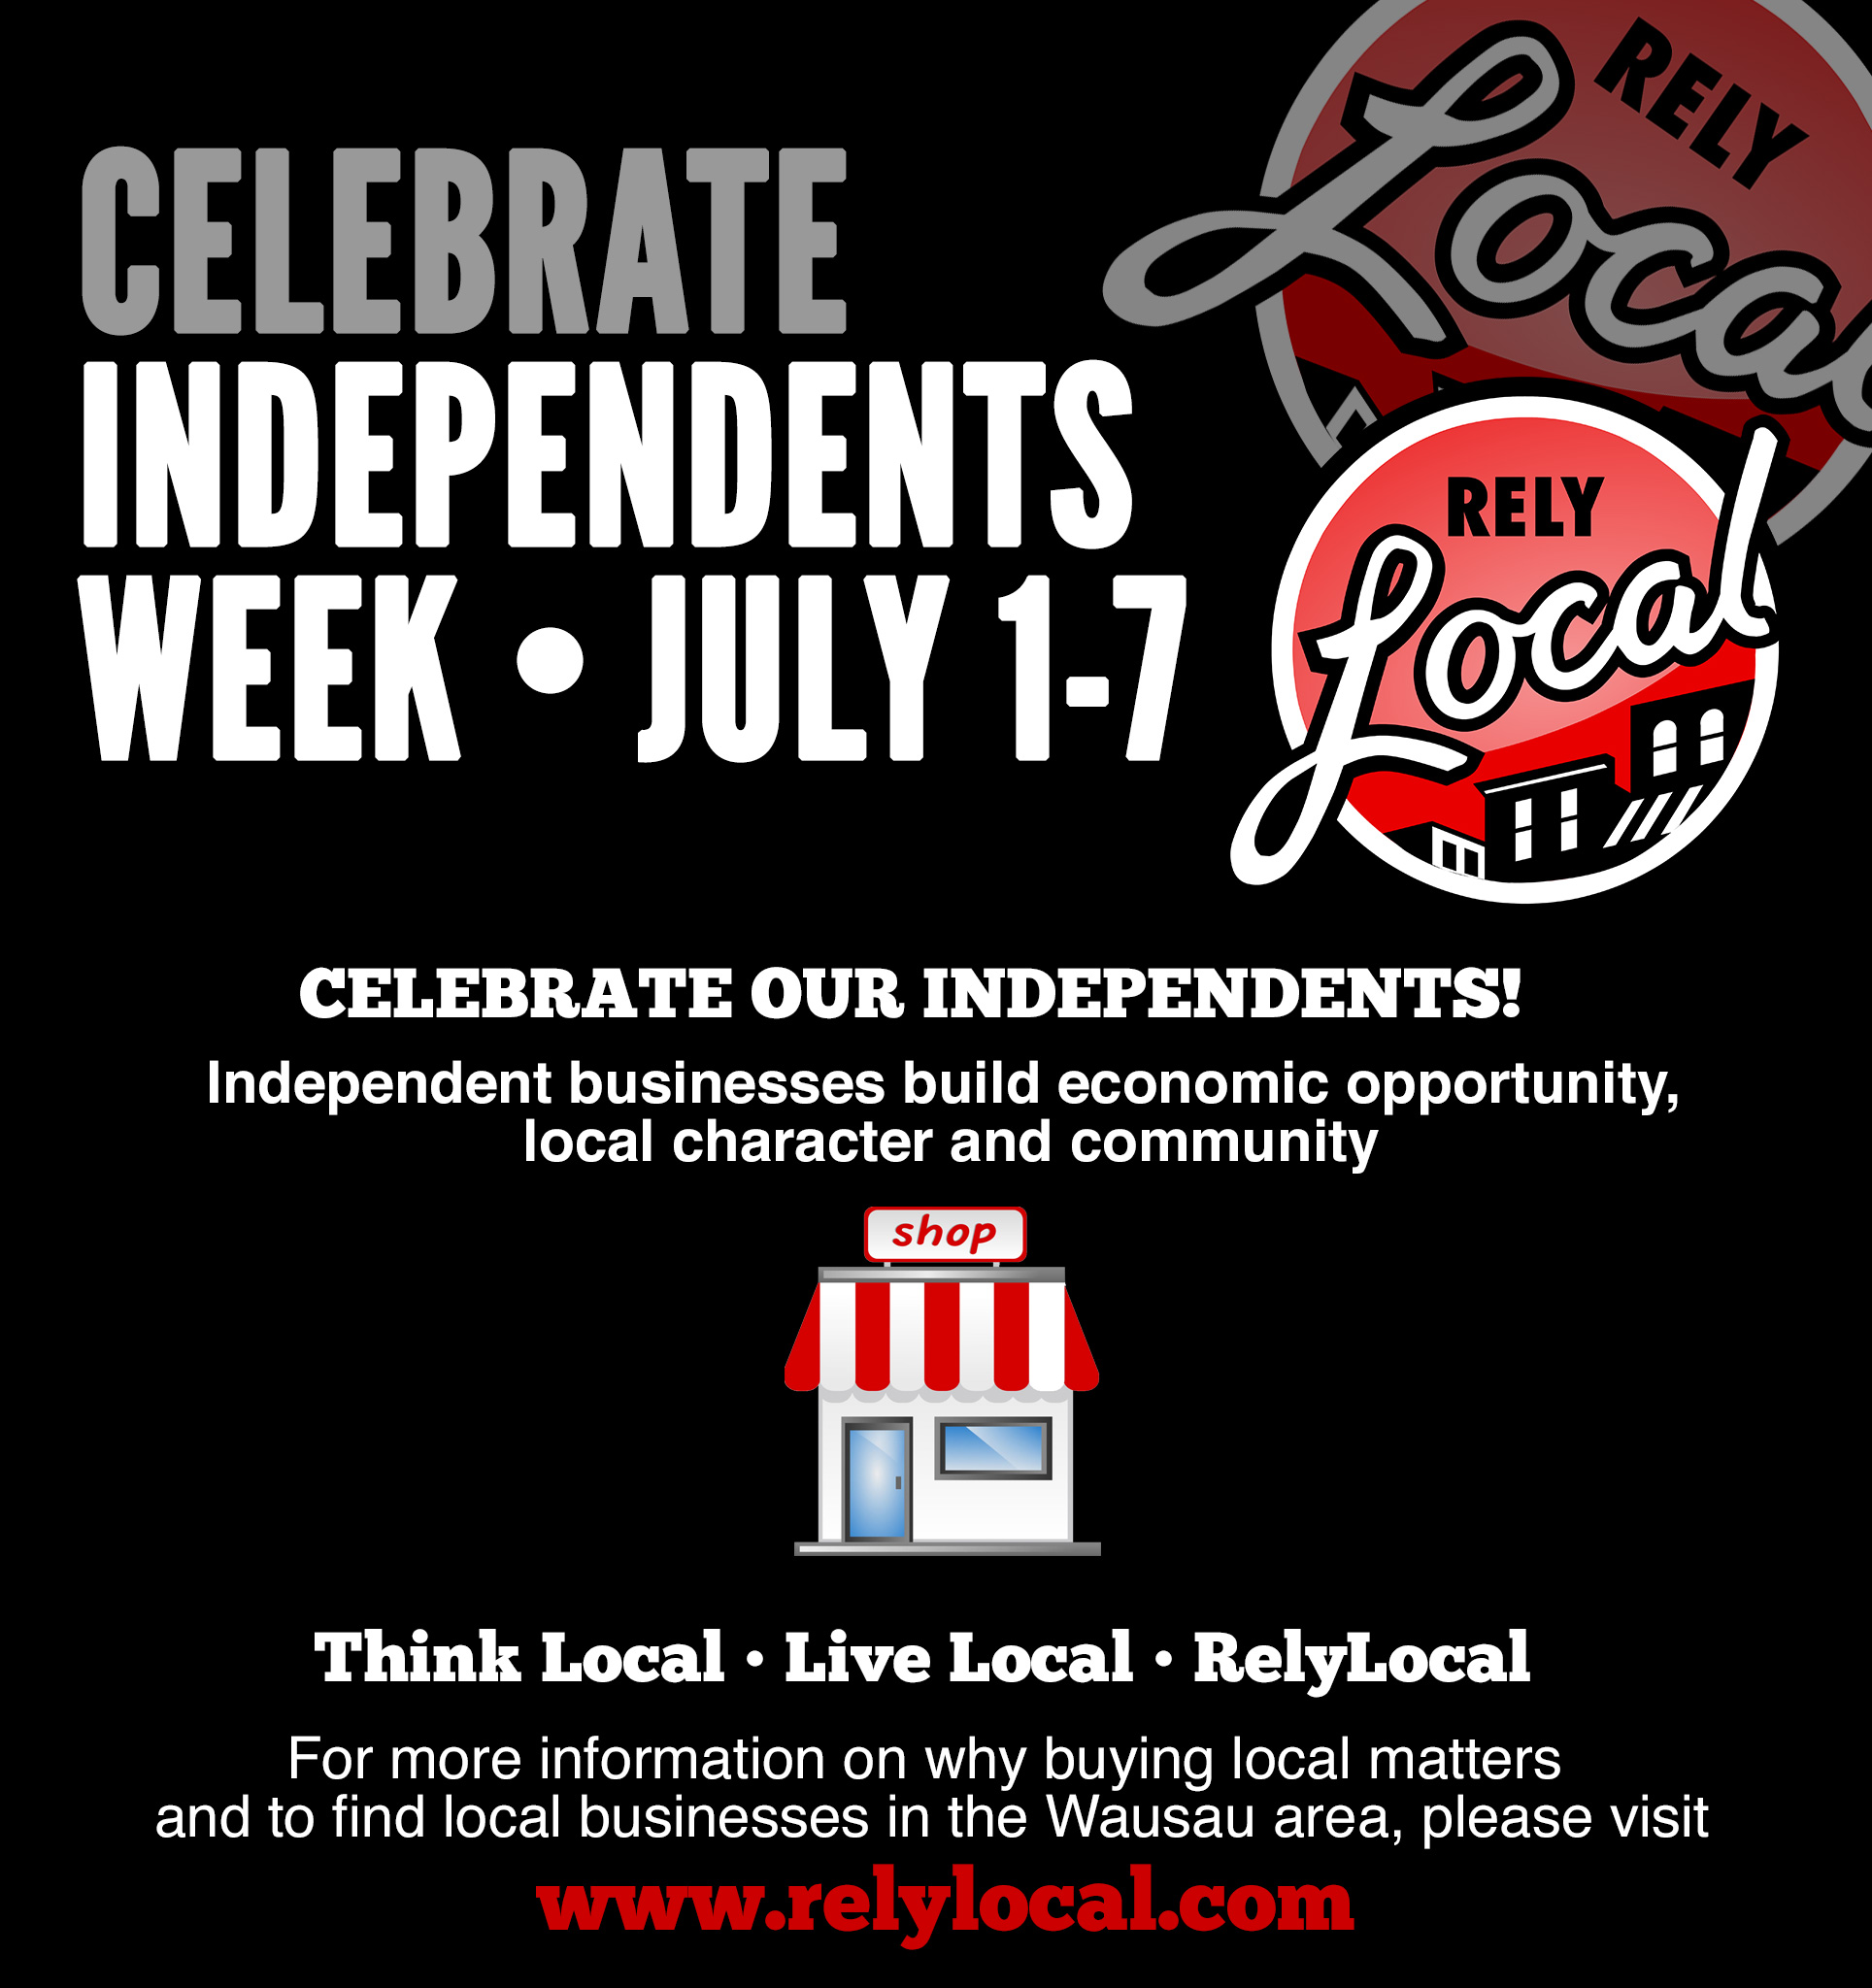 Celebrate Independents Week July 1-7